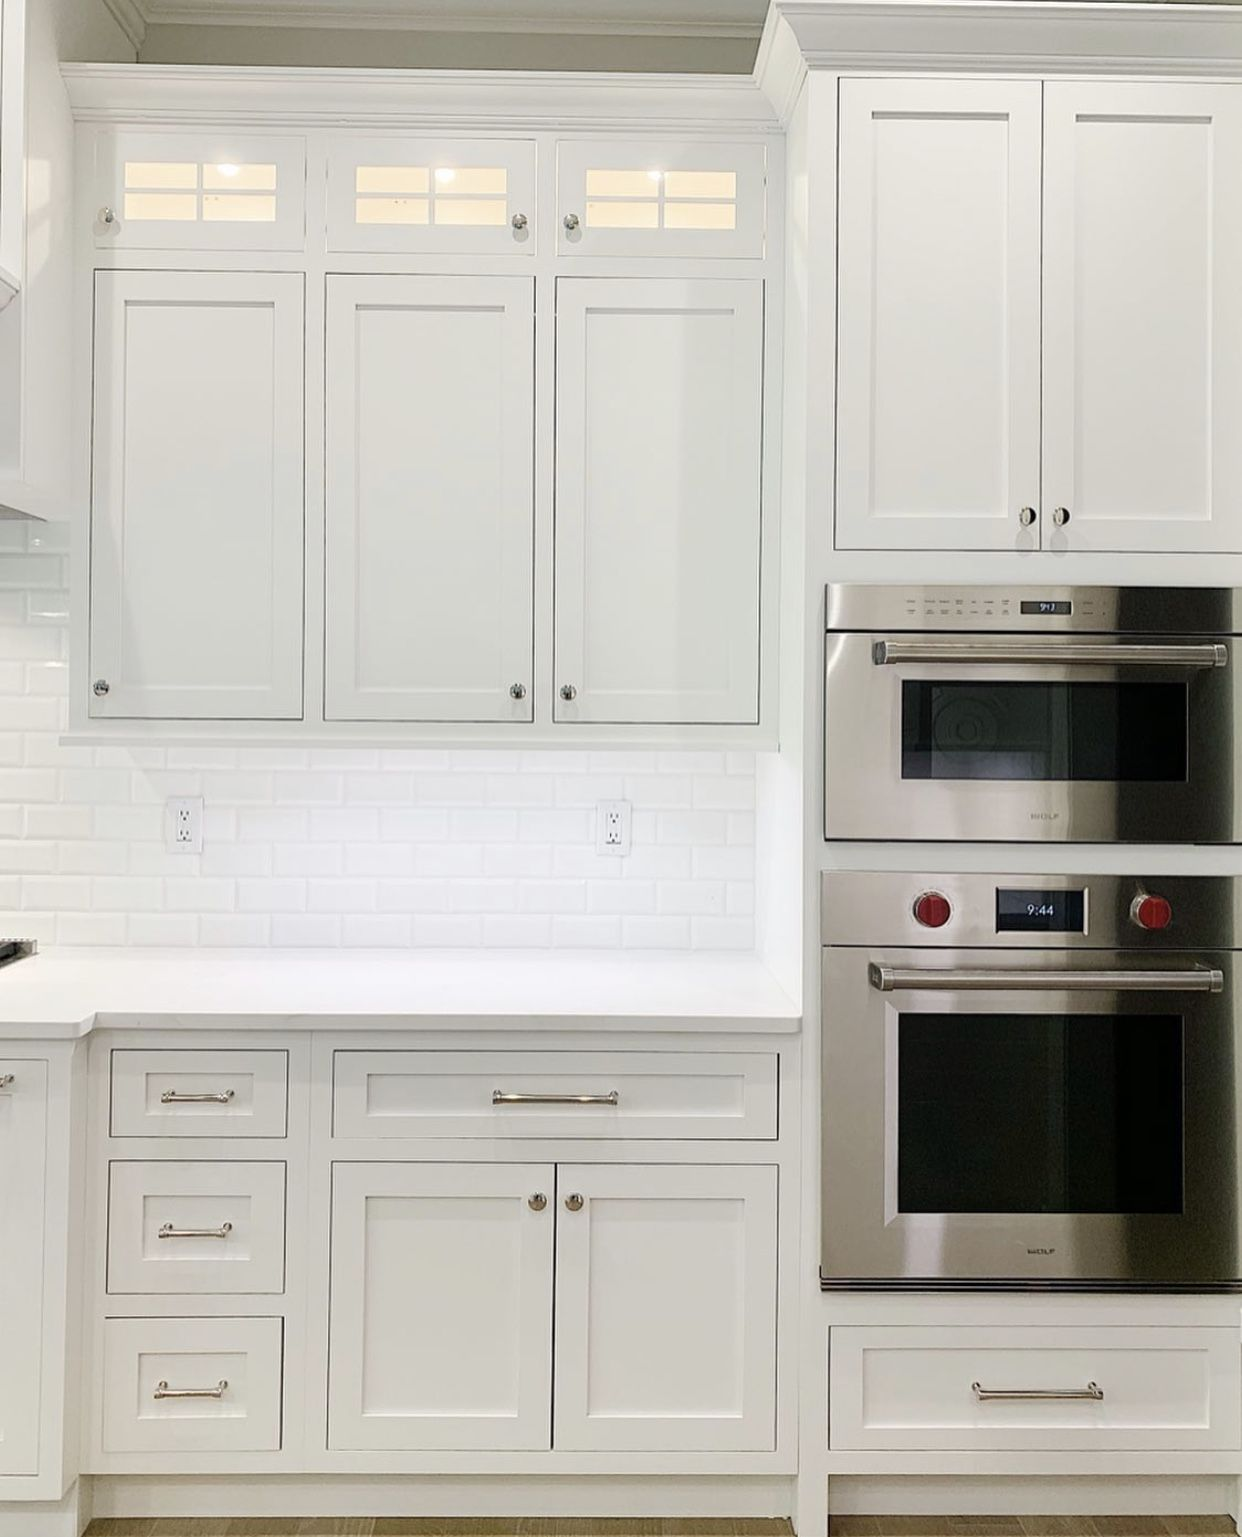 Monarch Cabinetry Kitchen In 2020 Cabinetry White Countertops White Backsplash